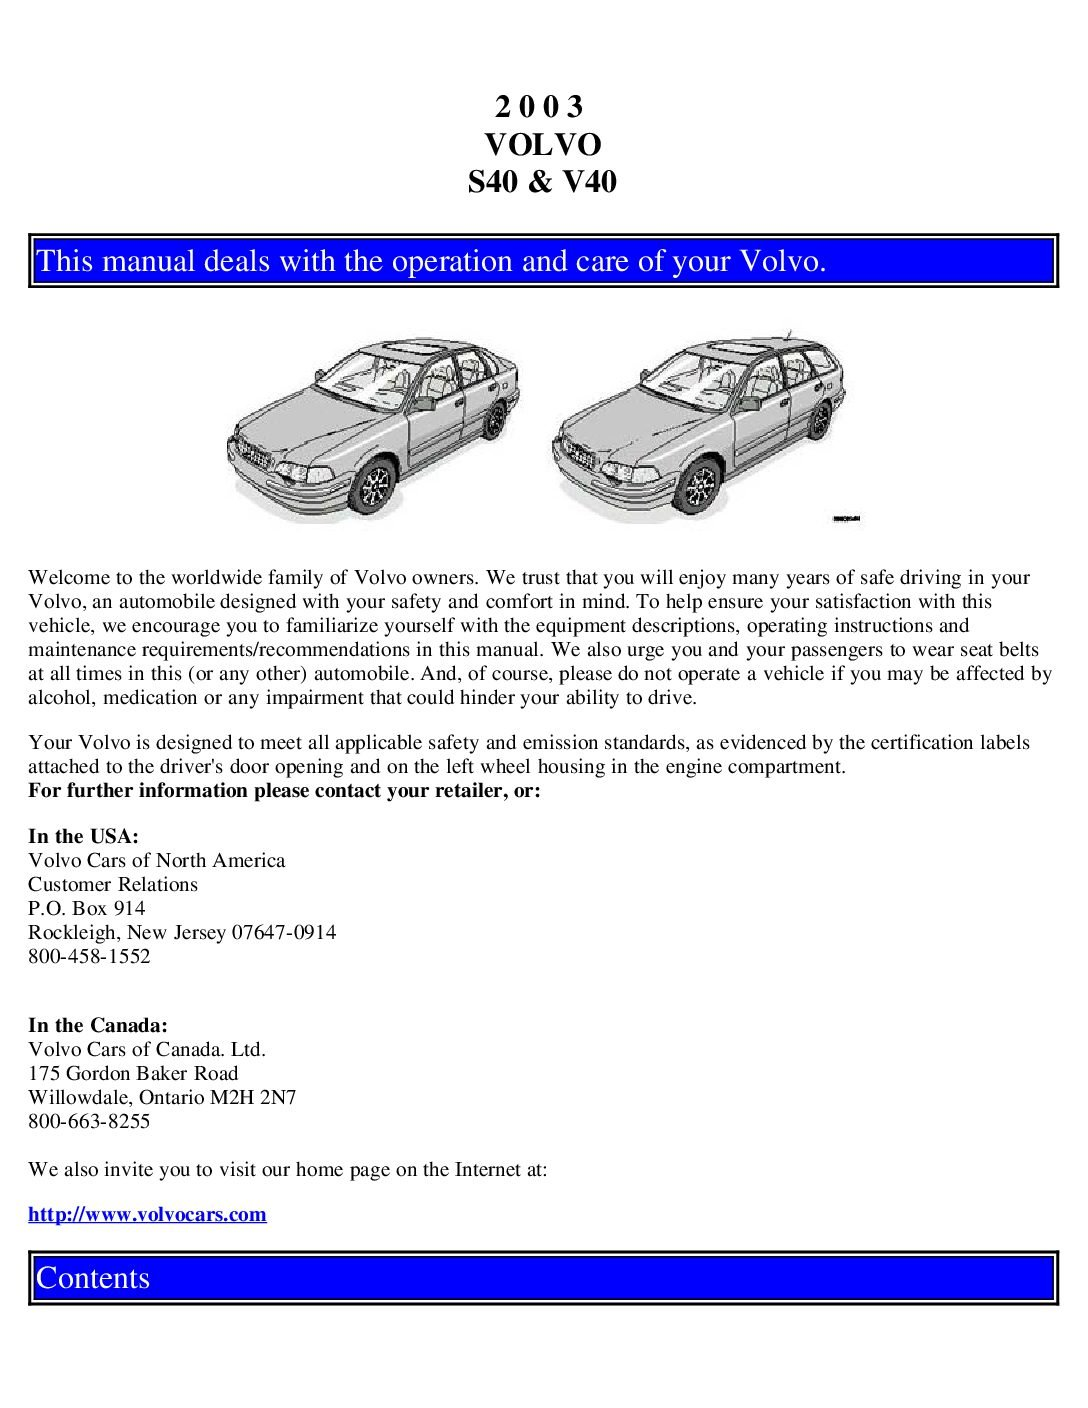 2003 volvo s40 v40 owners manual just give me the damn manual rh justgivemethedamnmanual com 2008 Volvo S40 2001 Volvo S40